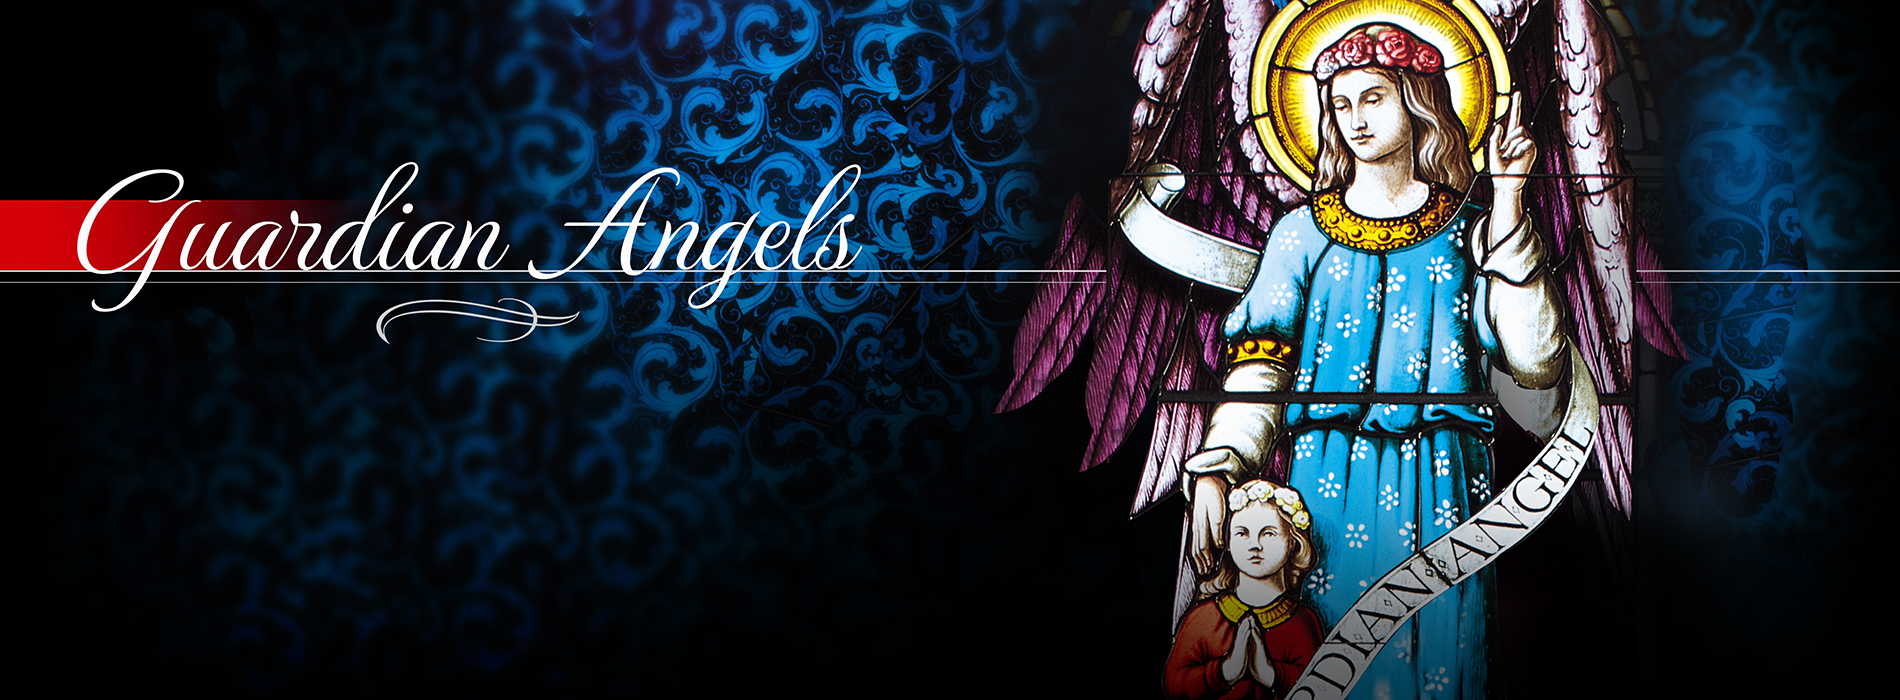 """""""8 Ways Your Guardian Angel Can Help You Every Day""""–Connections Between Faith and Life YouTube Series"""